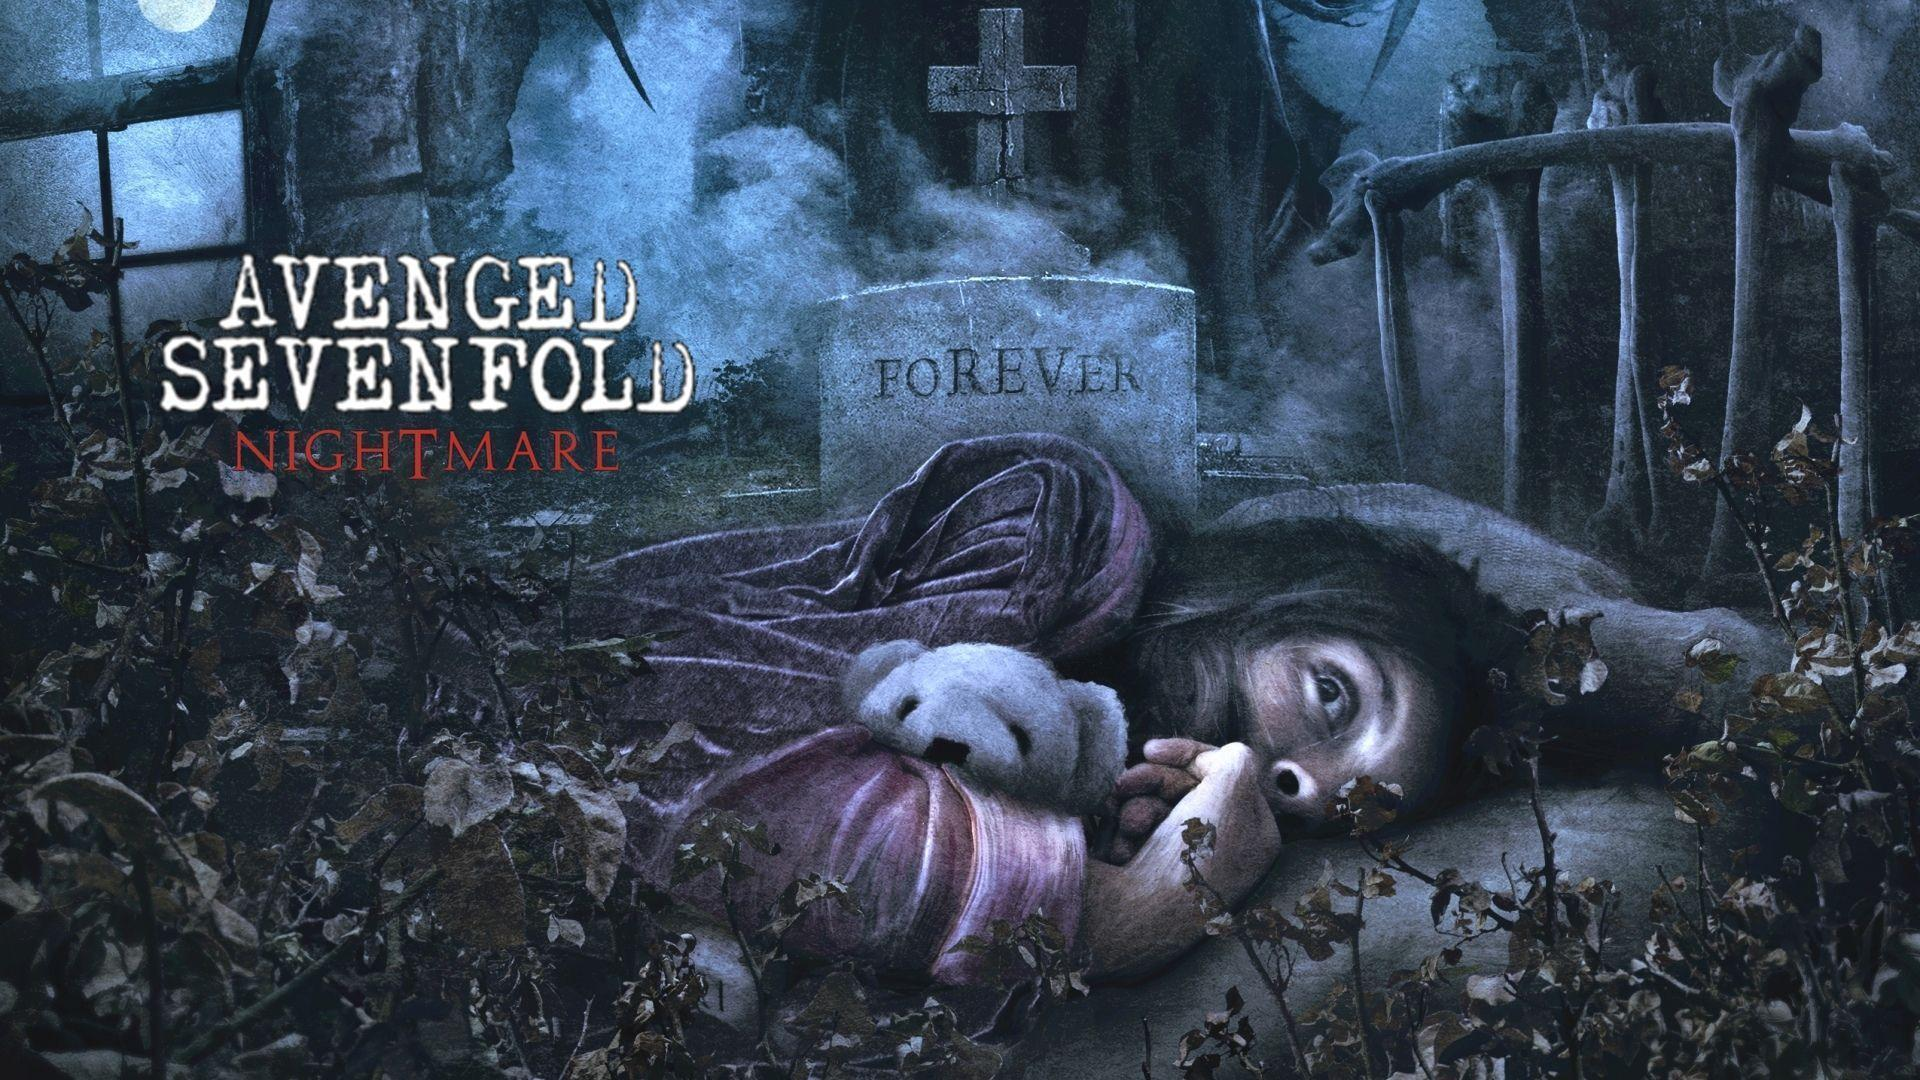 Wallpaper download abyss - Wallpaper Abyss Avanged Sevenfold Free Download Wallpaper